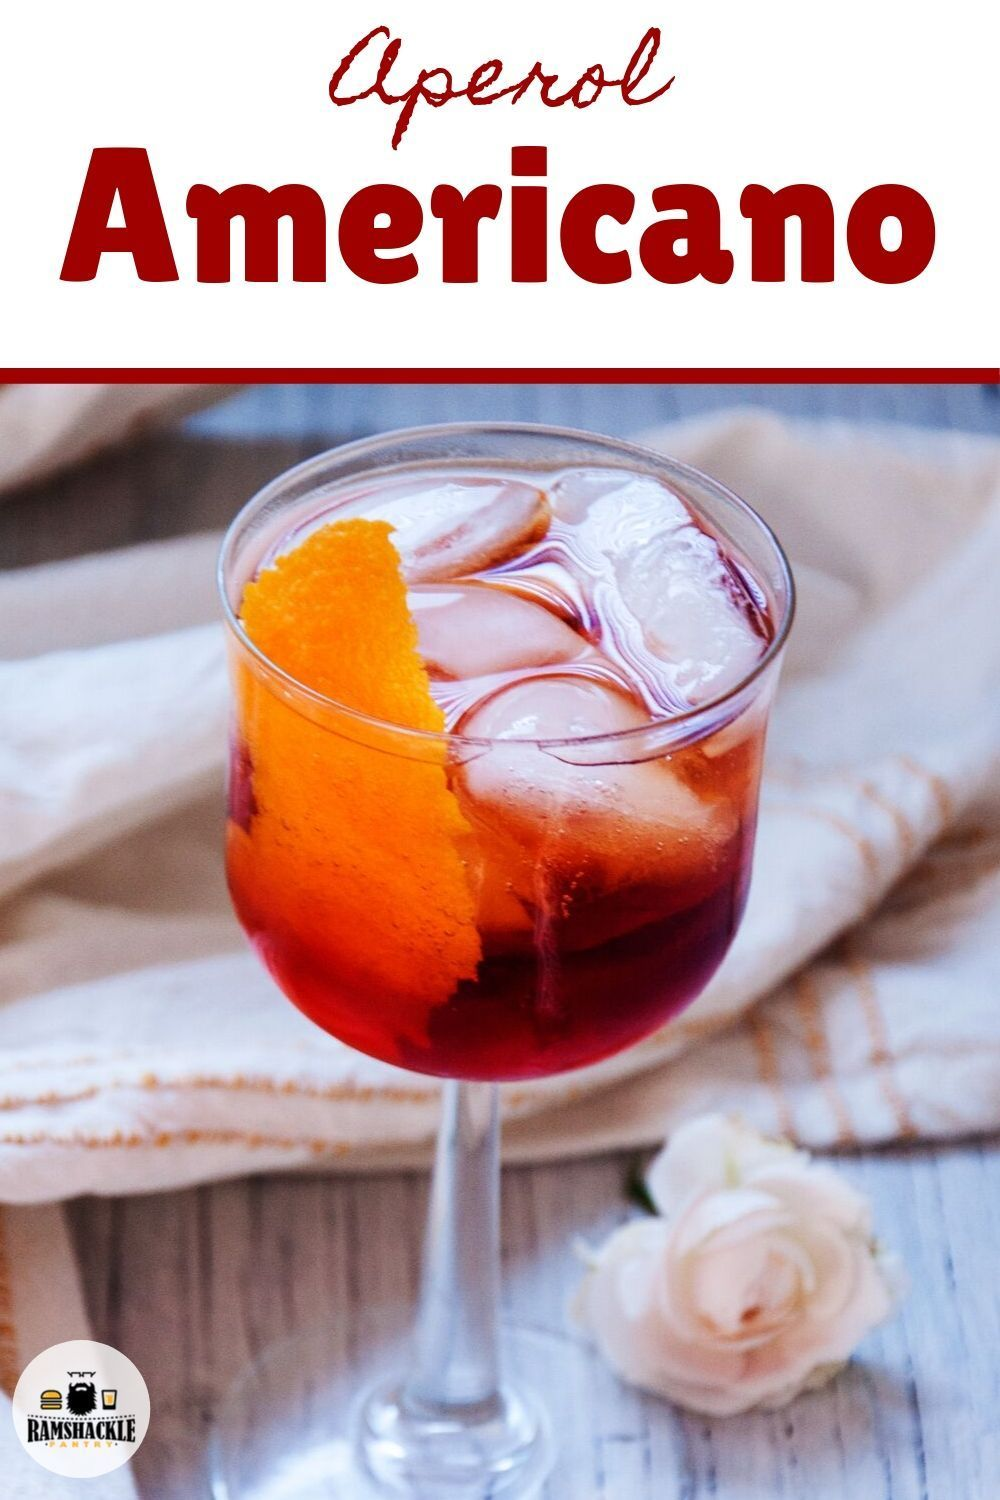 This Aperol Americano Cocktail Recipe Is A Great Afternoon Sipper I Nice Sweet Drink With A Hint Of Americano Cocktail Recipe Classic Cocktail Recipes Aperol